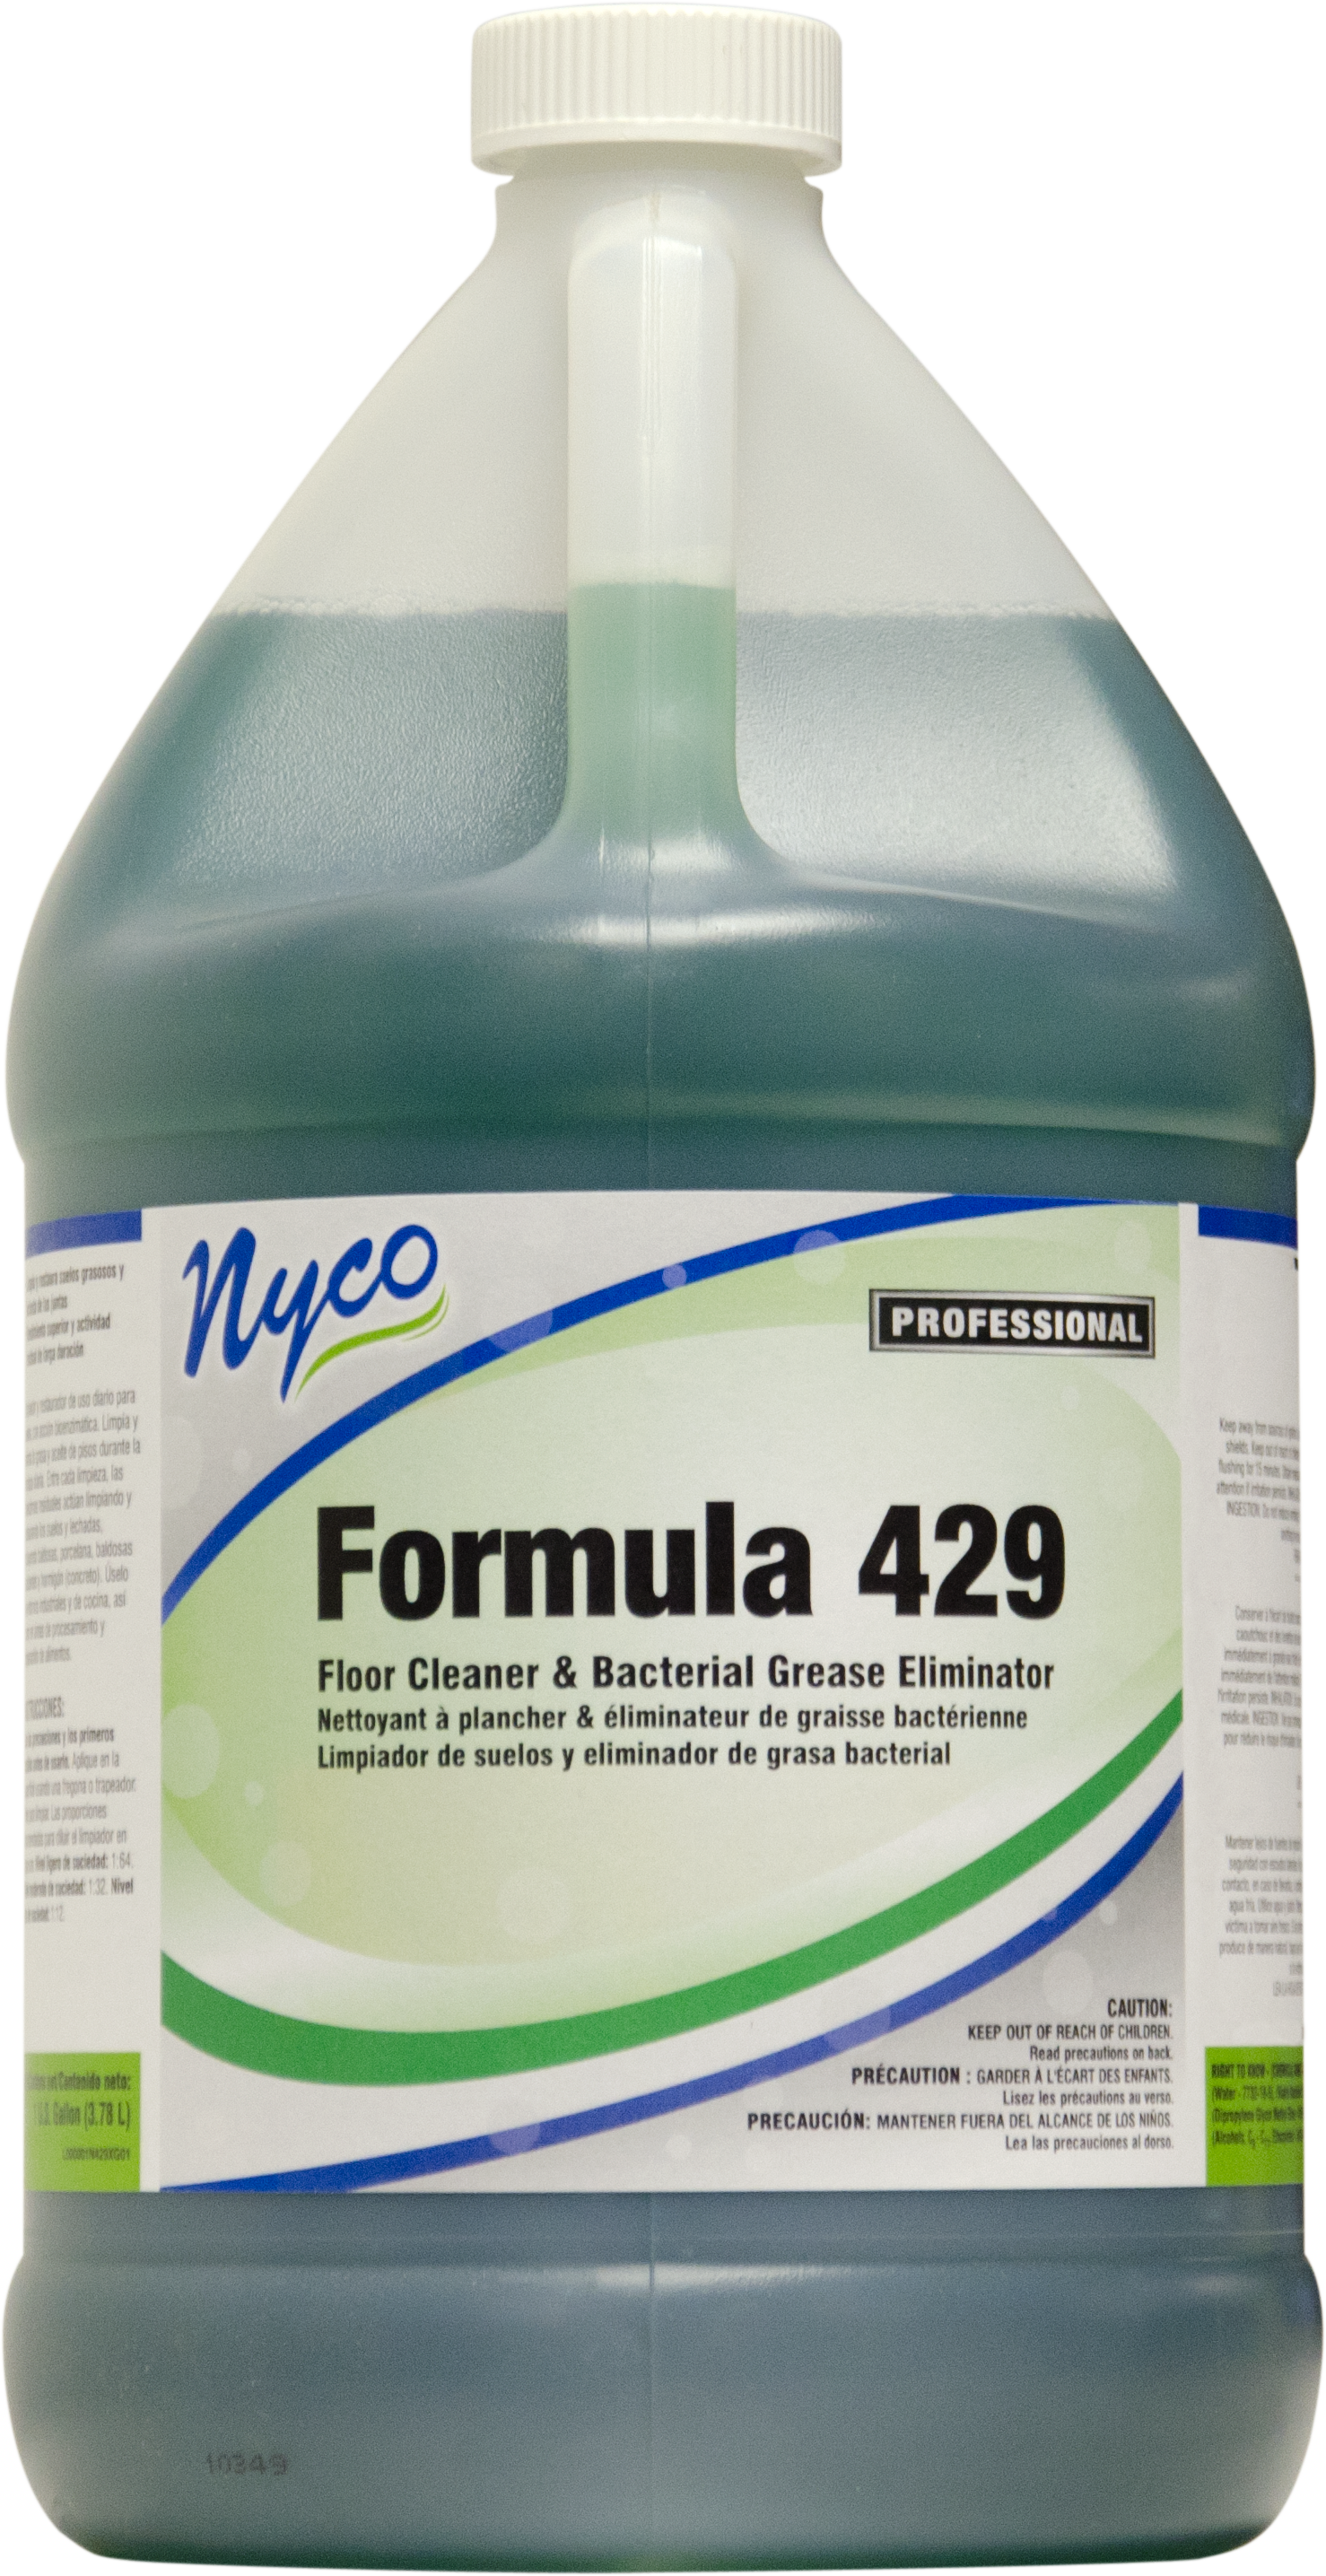 Nyco NL429-G4 formula 429 floor cleaner & bacterial grease eliminator